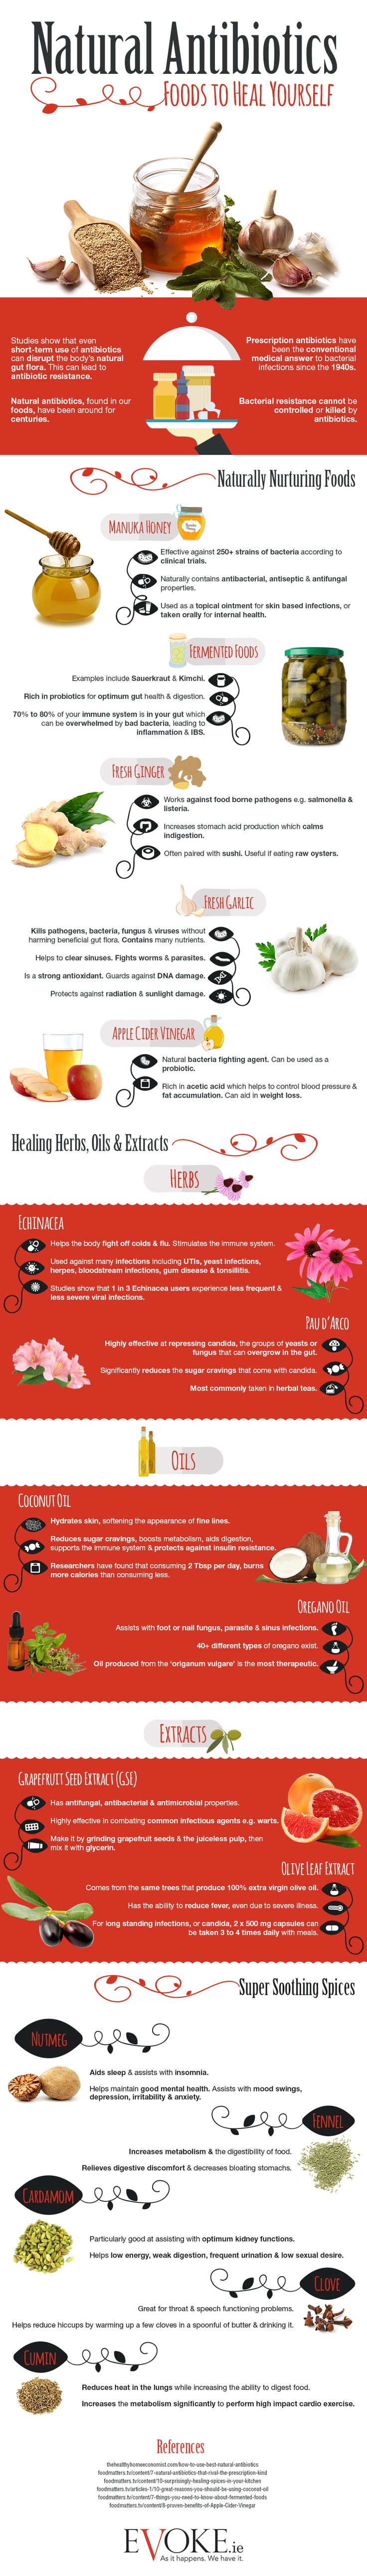 natural-antibiotics-foods-to-heal-yourself-infographic